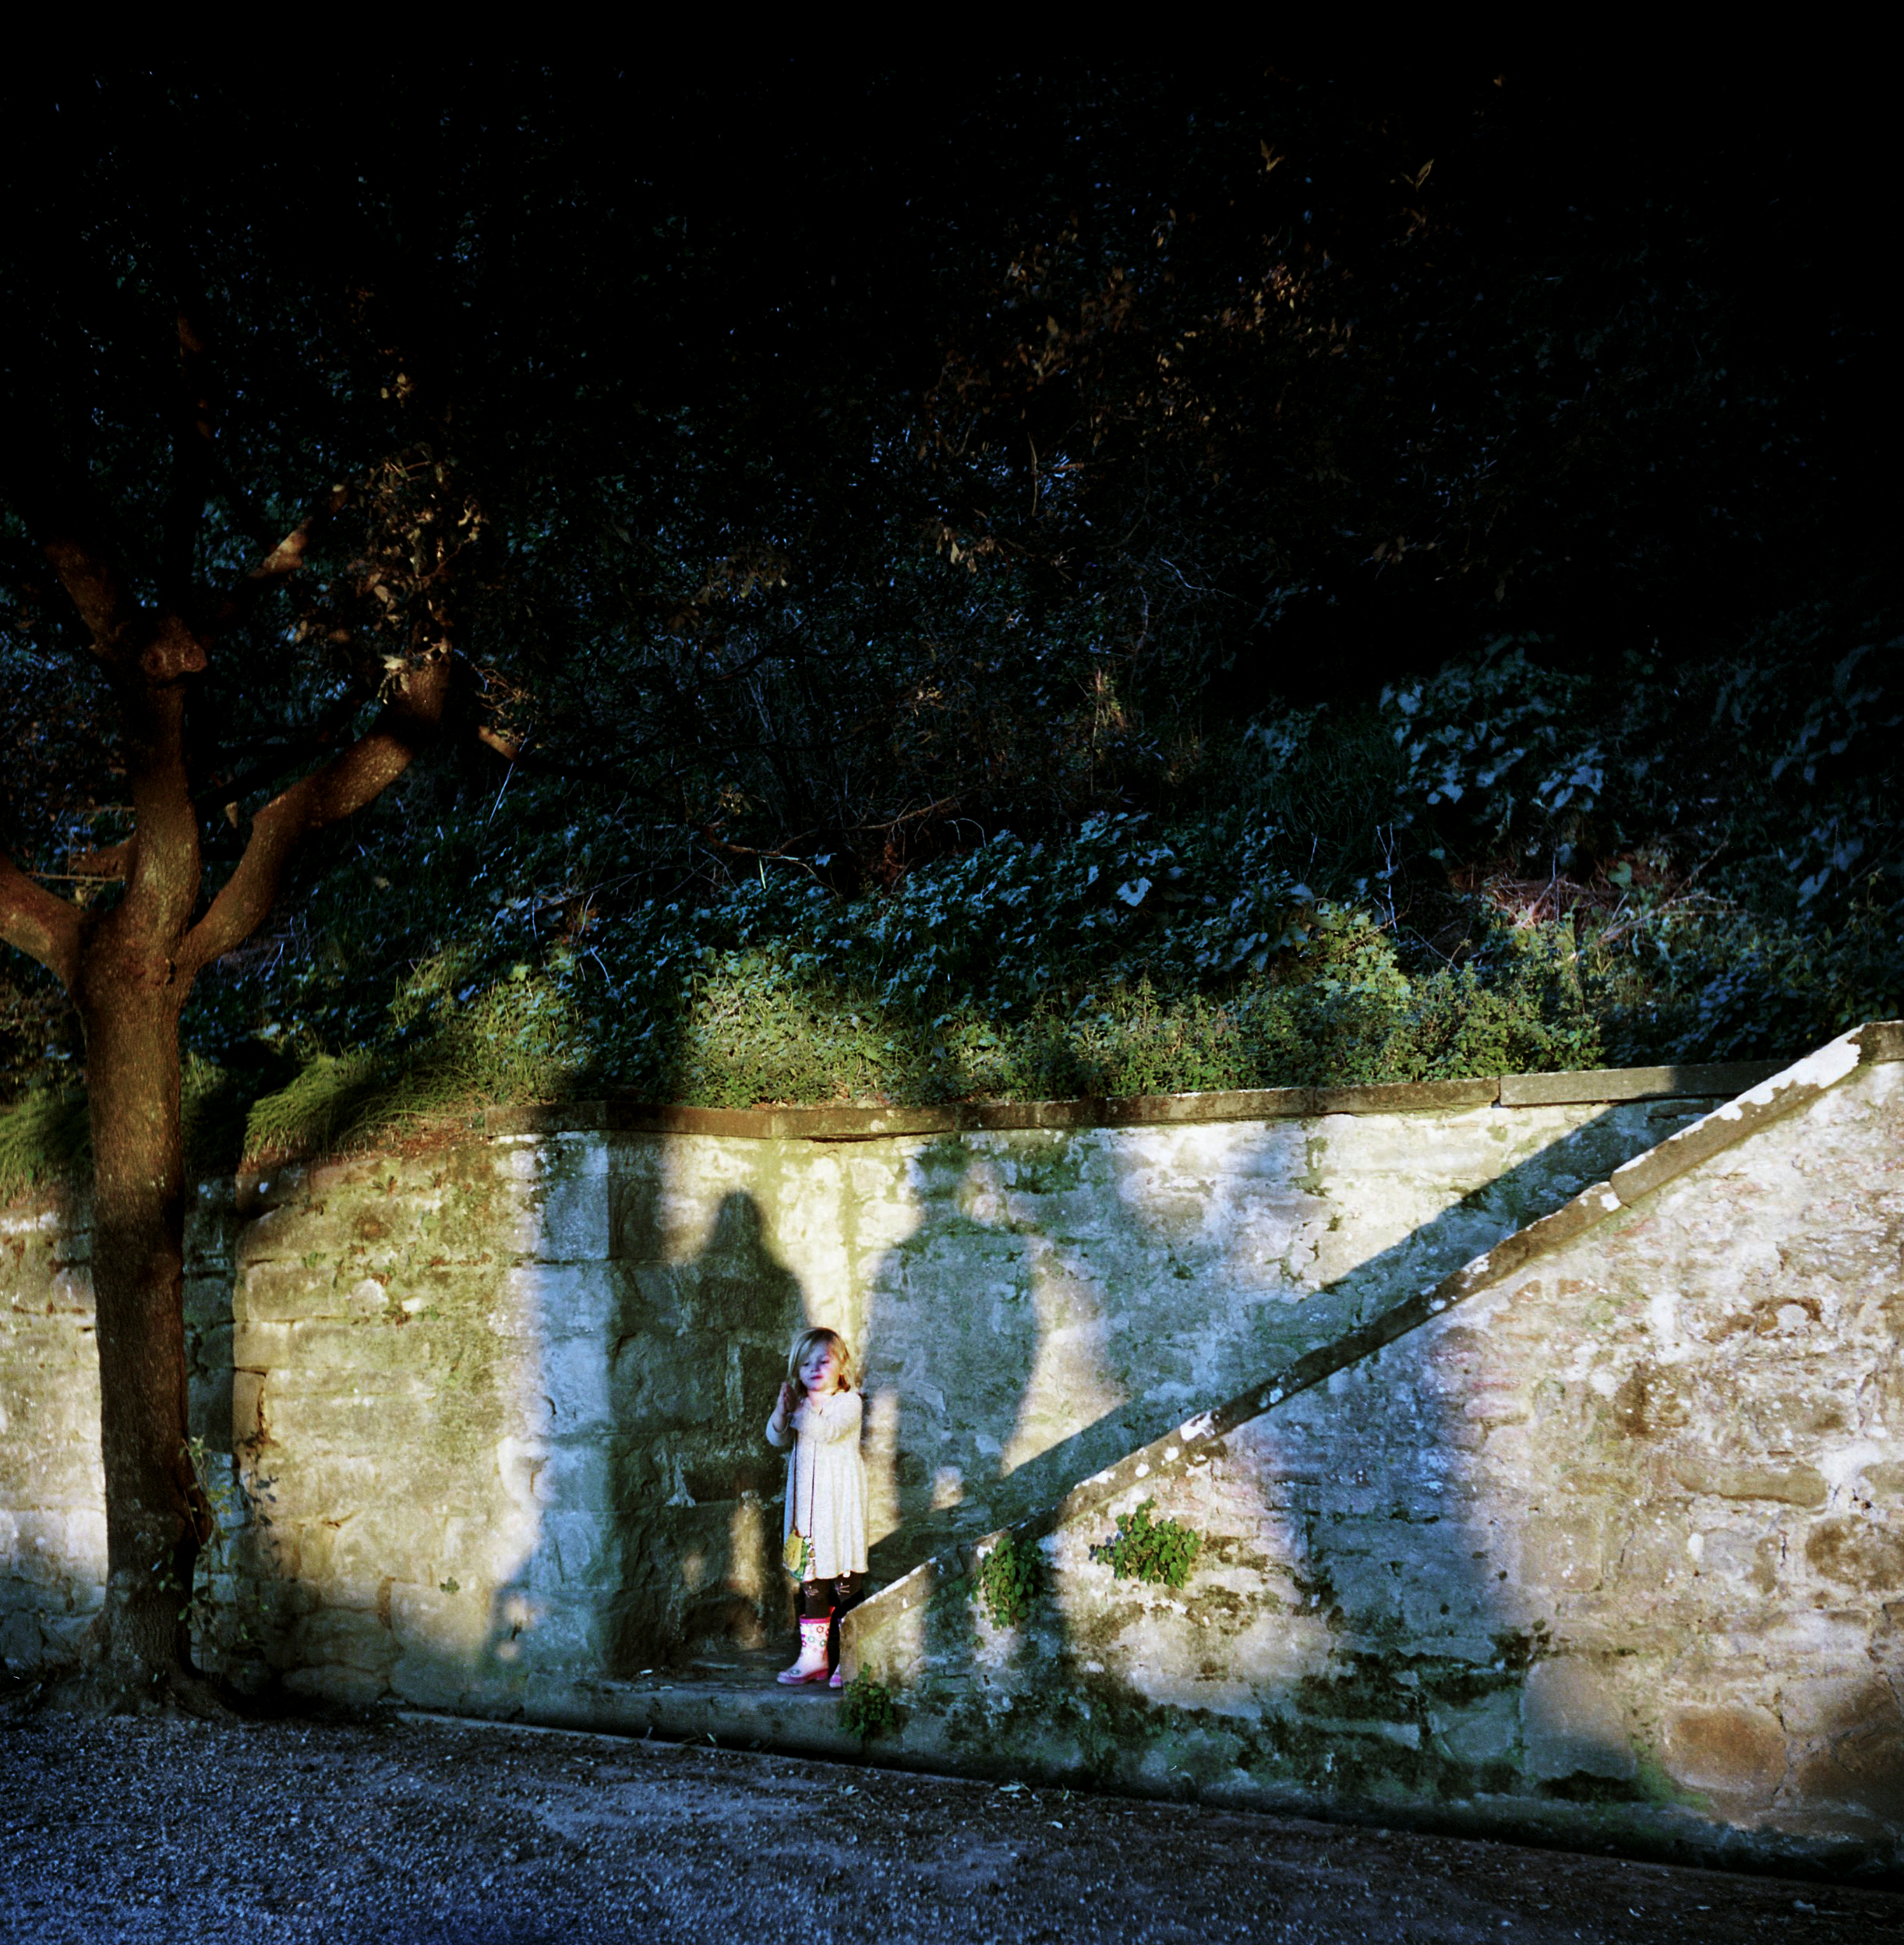 Family Shadows at dusk in the park, Cortona, Italy